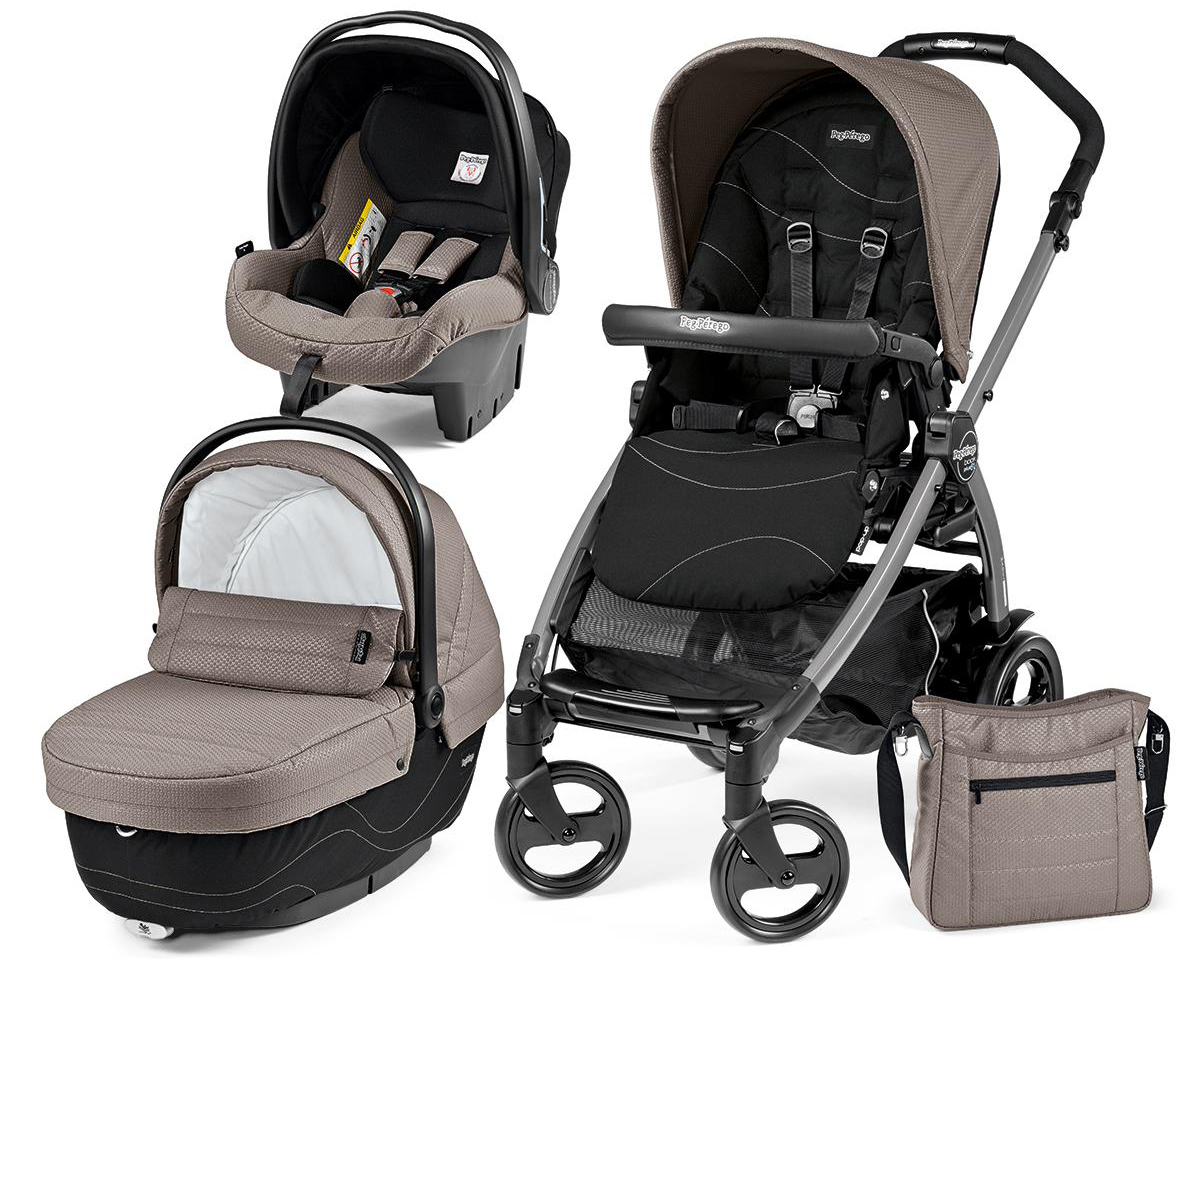 hr_2017_09_01_peg_perego_bloom_beige.jpg